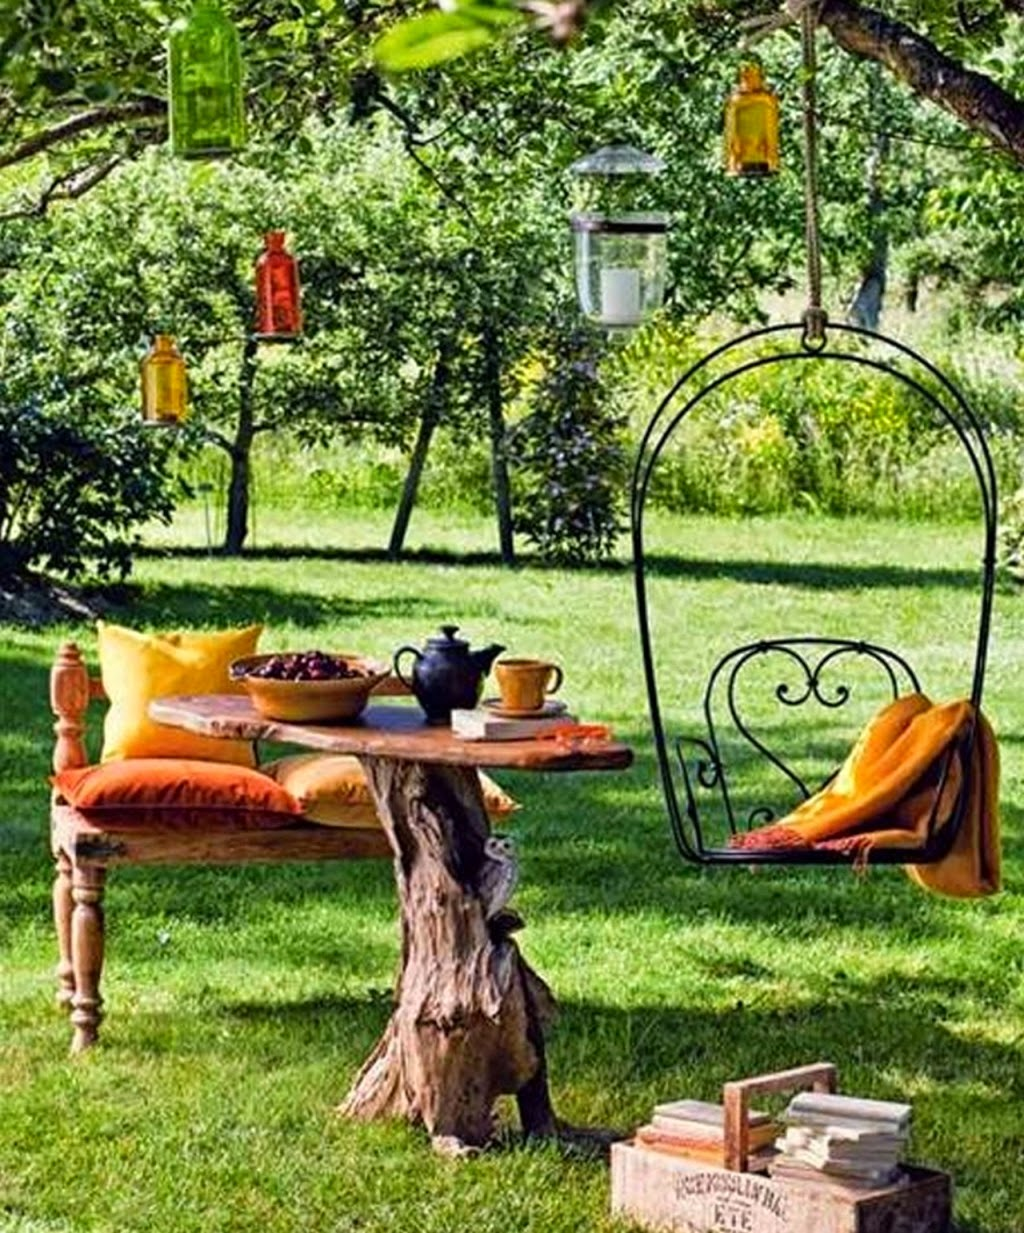 Beautiful Home Gardens Designs Ideas: Hagen I Skogen: Idyll I Hagen, Rom Til Inspirasjon